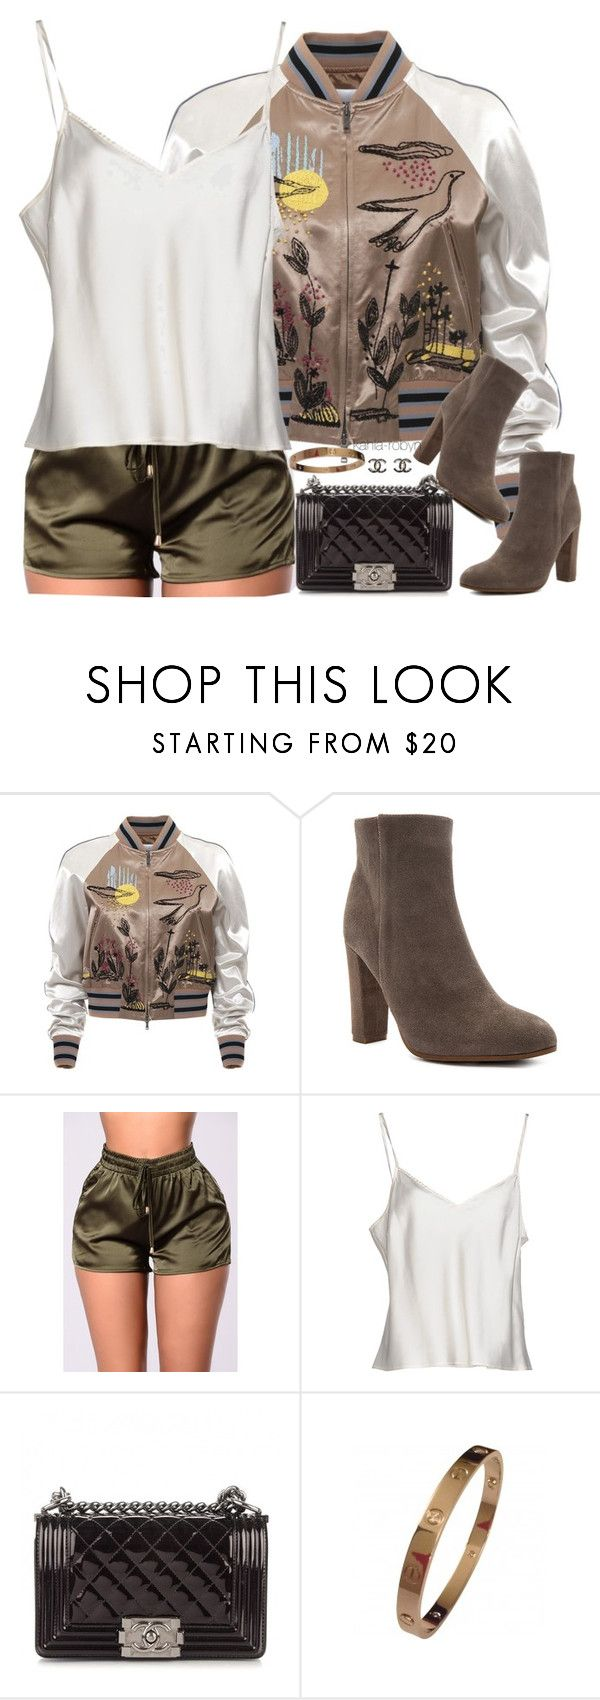 """""""V   XXI   XVII"""" by kahla-robyn ❤ liked on Polyvore featuring Valentino, Tony Bianco, Clips and Chanel"""